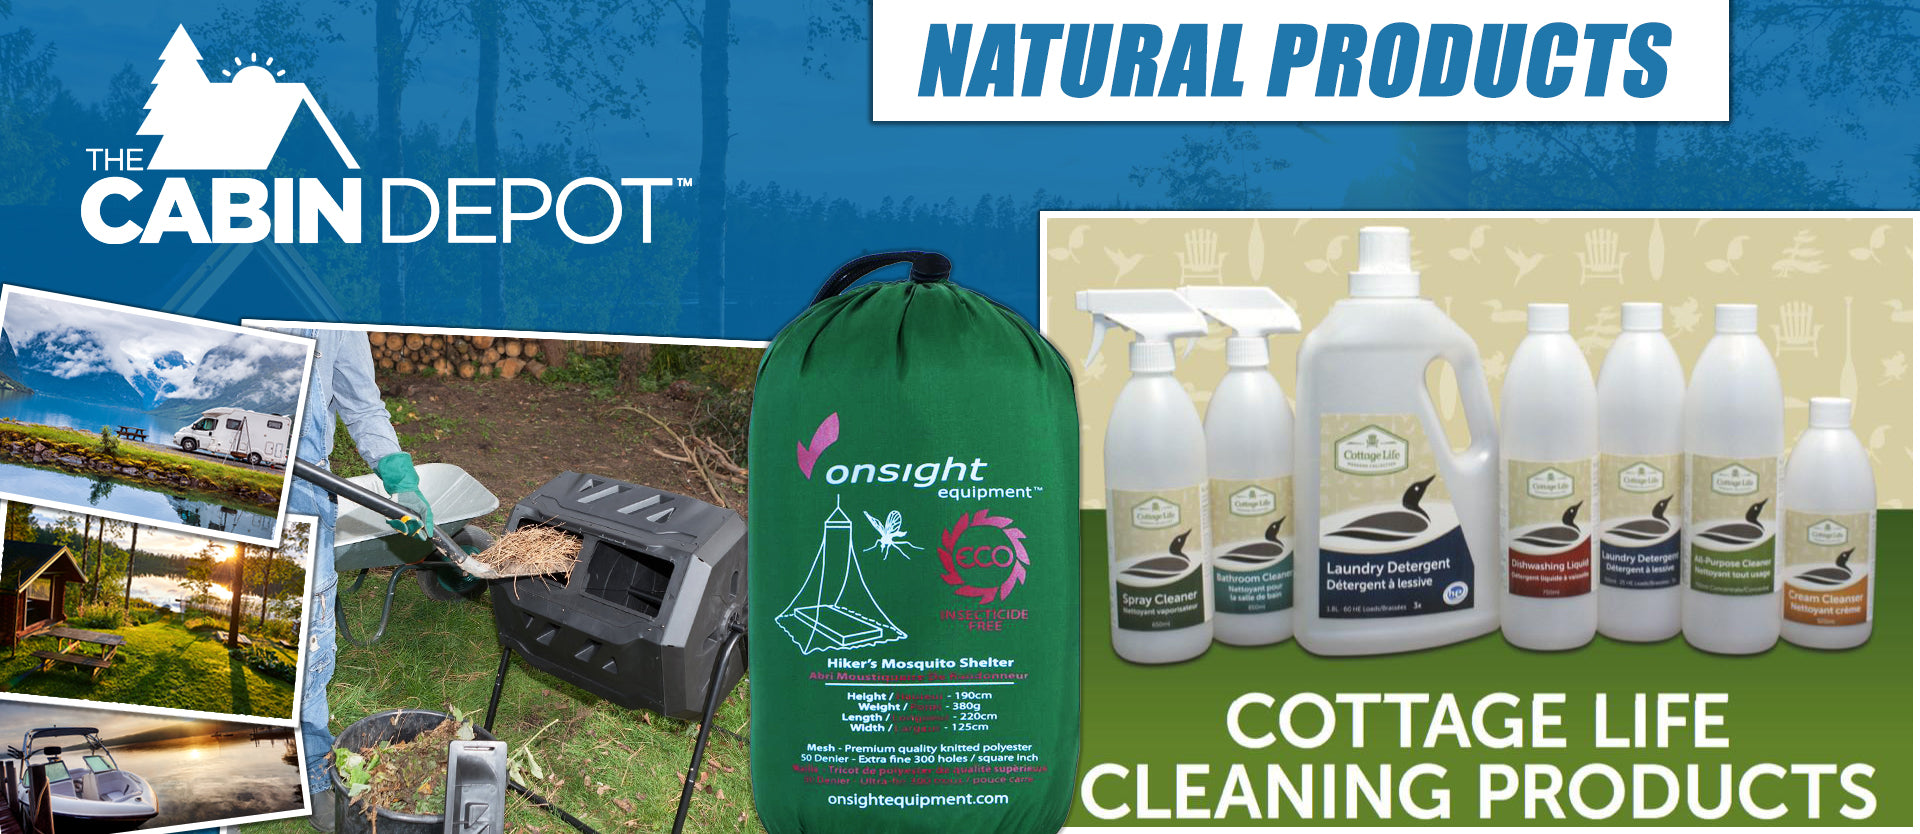 Natural Products The Cabin Depot ™ Canada